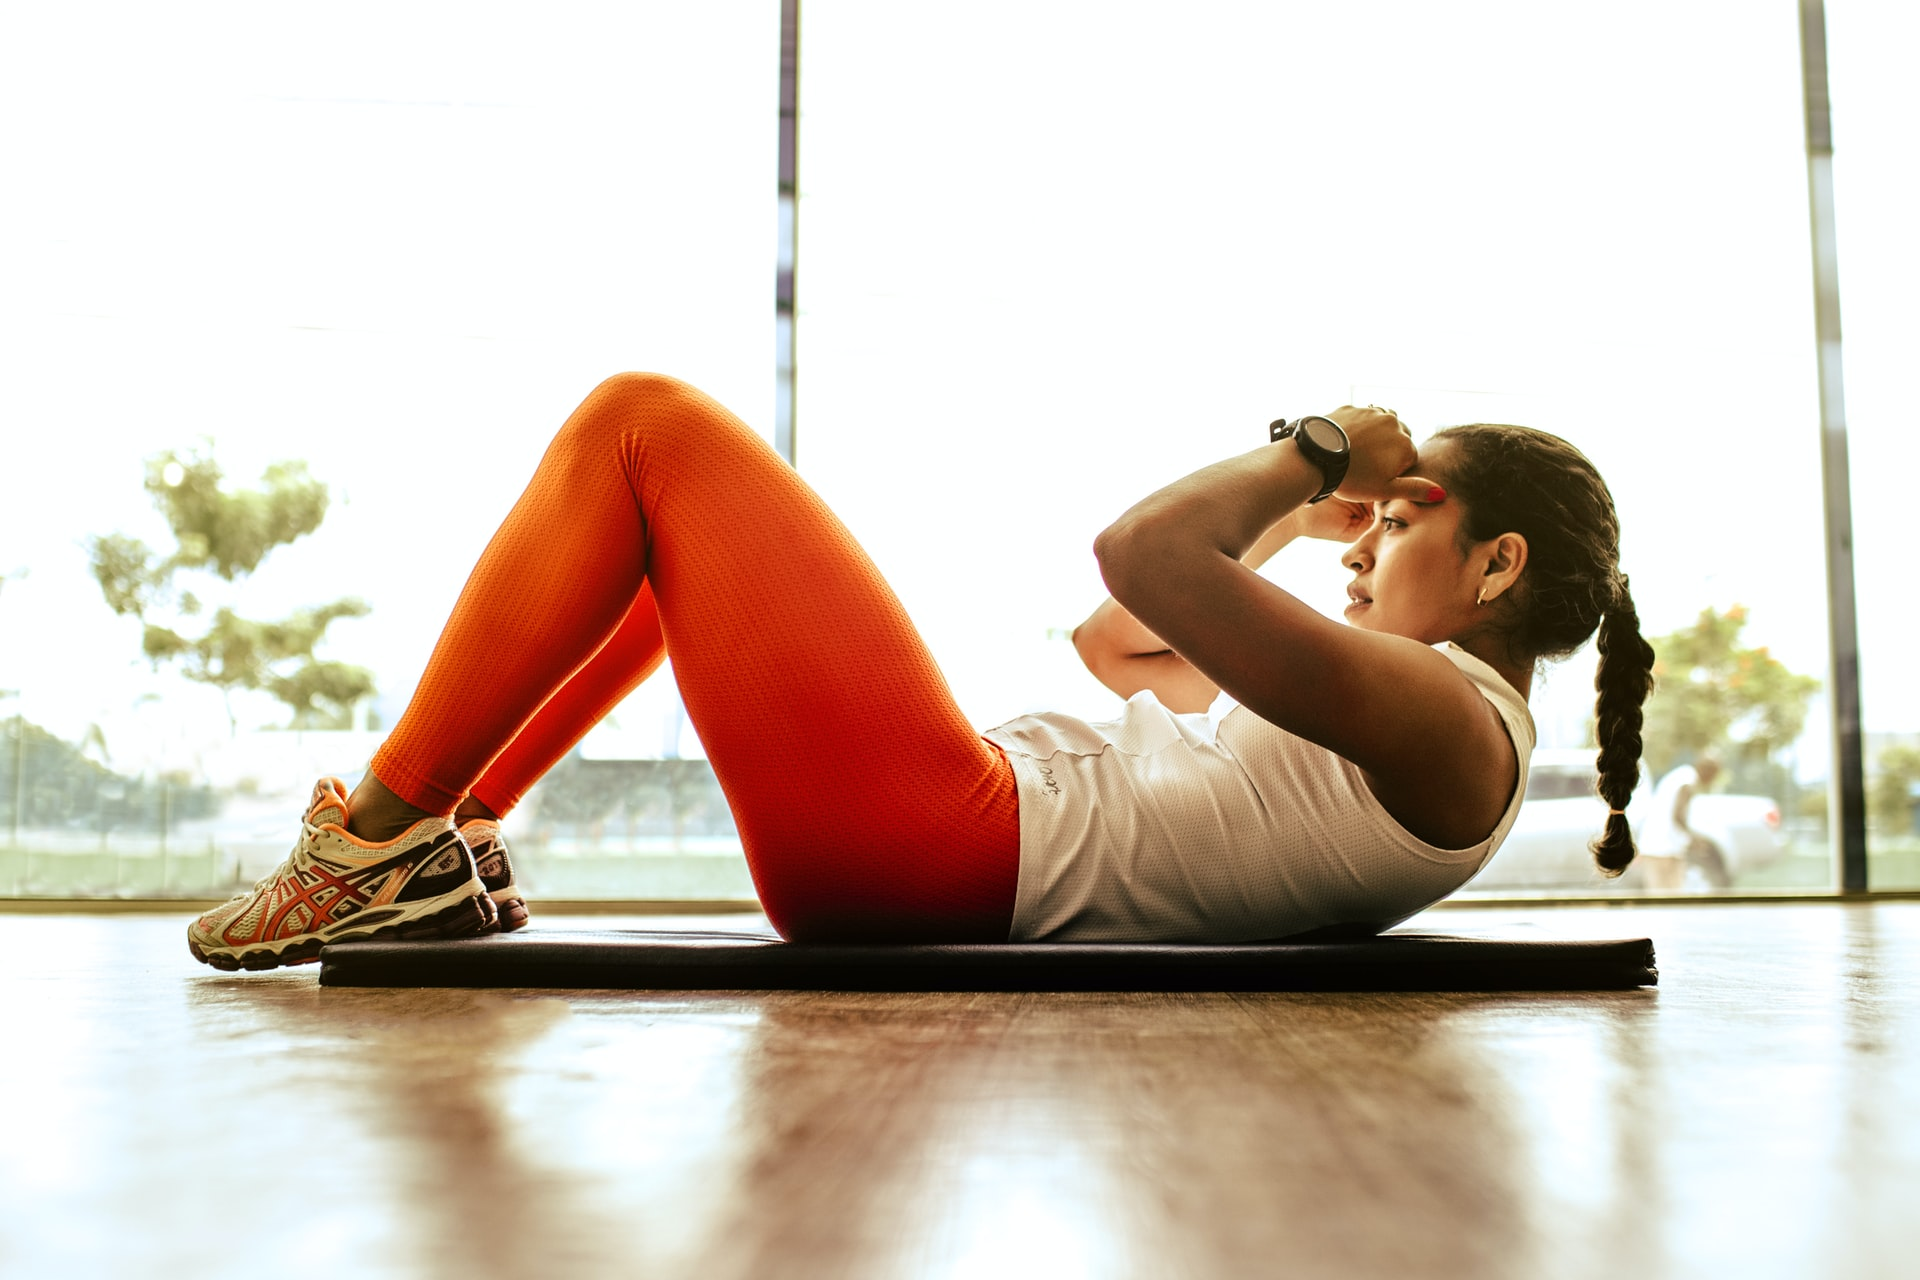 How to Stay Fit and Active at Home During the Coronavirus Crisis? 4 Tips to Workout at Home